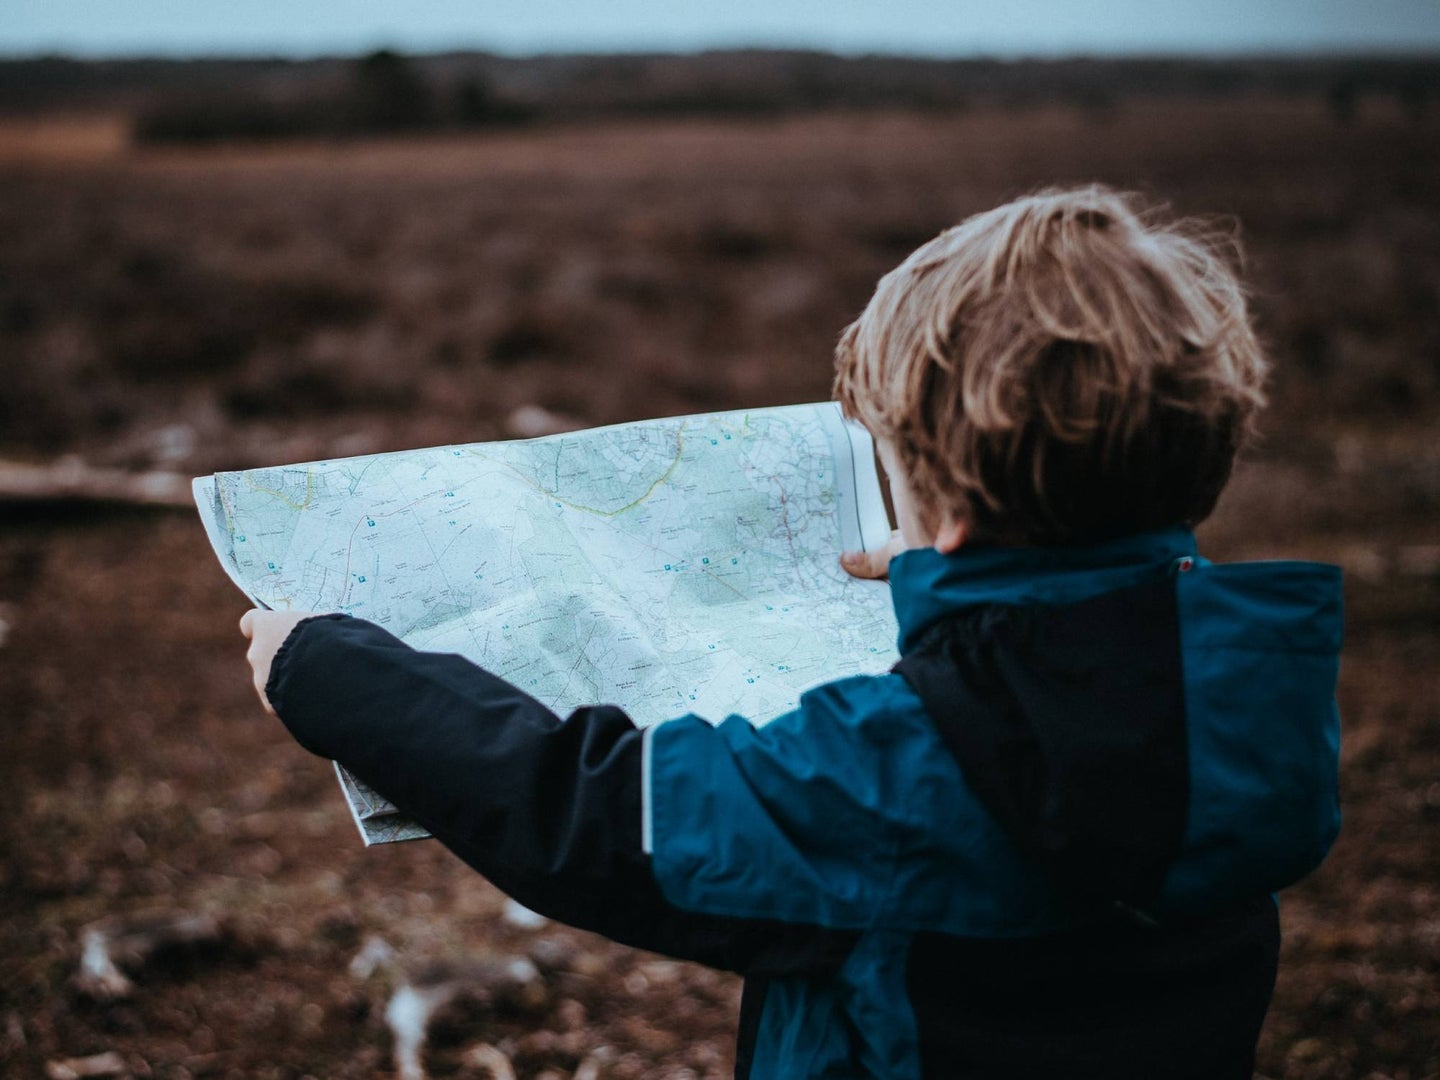 A child holding a map outdoors.